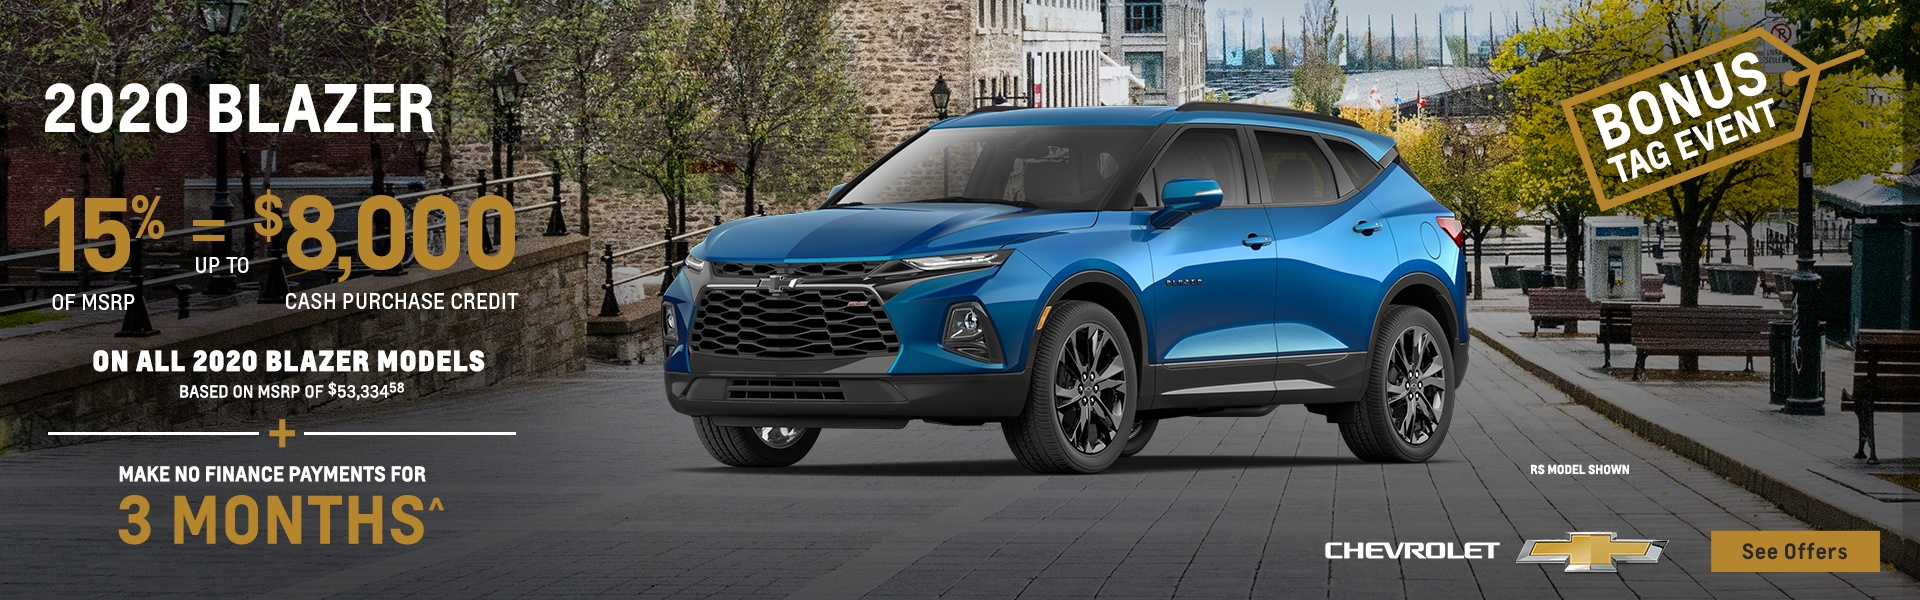 2020 Chevy Blazer August savings Tilbury Windsor